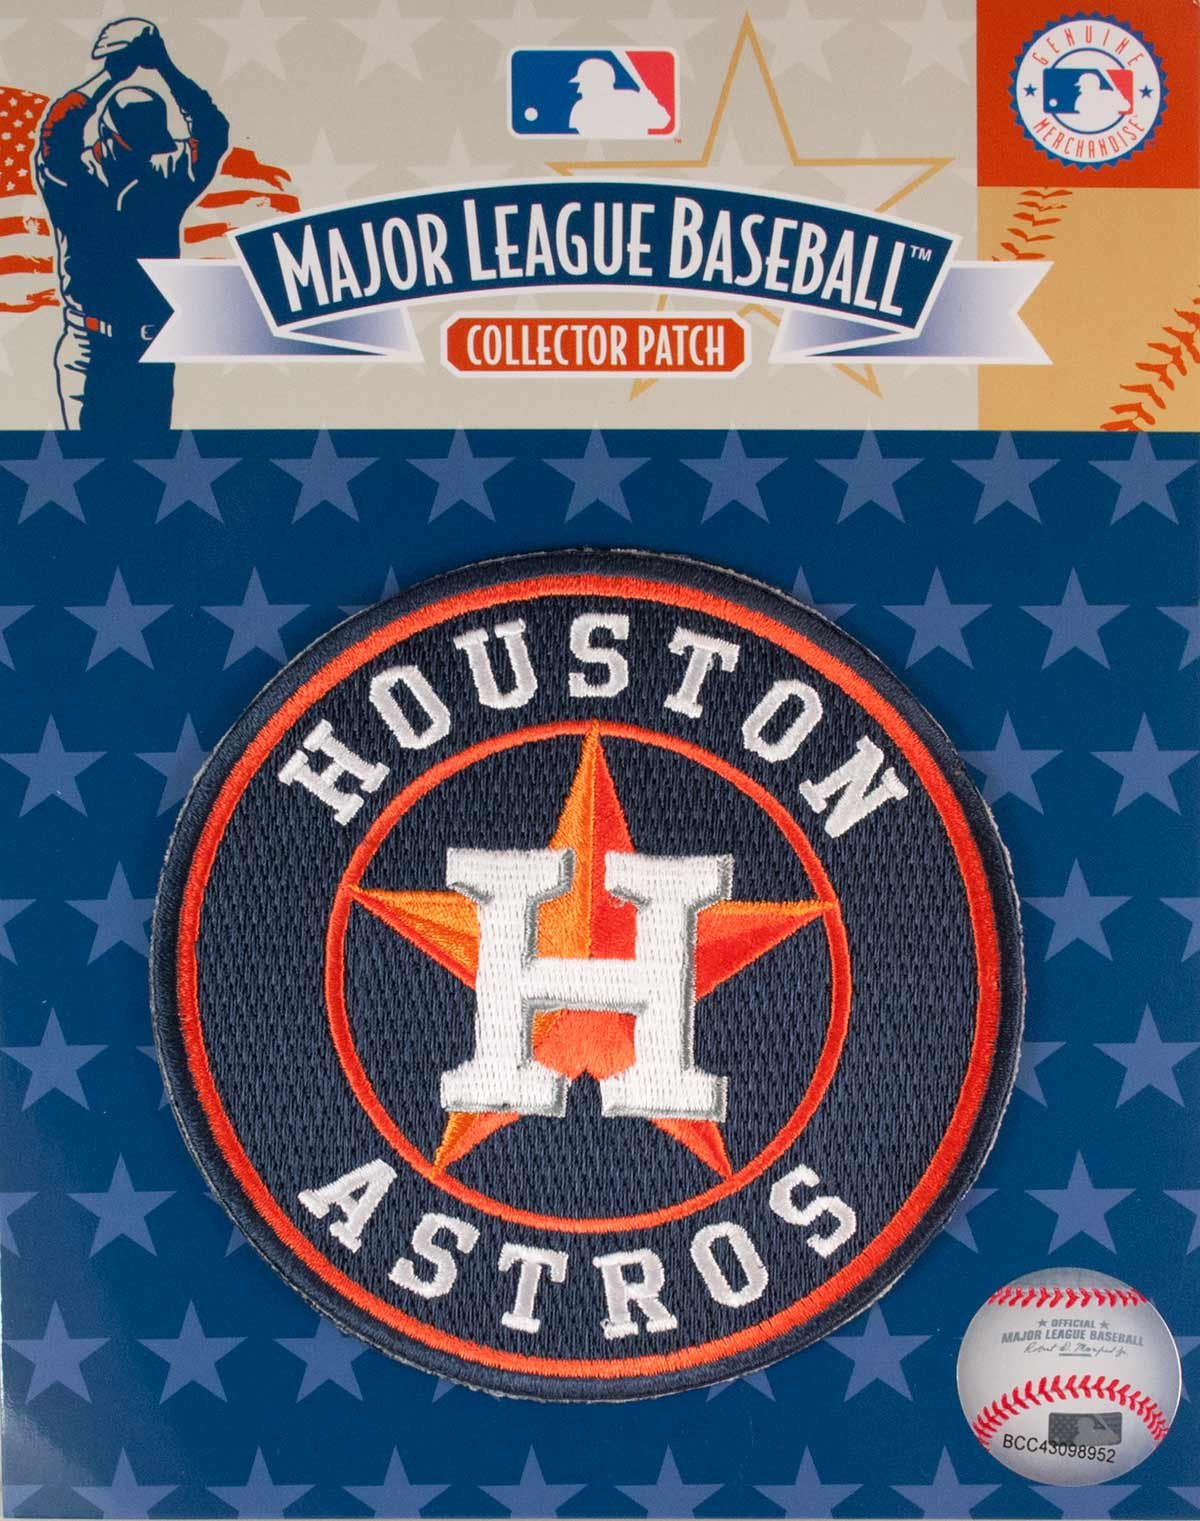 Houston Astros Road Collectors Patch by Emblem Source